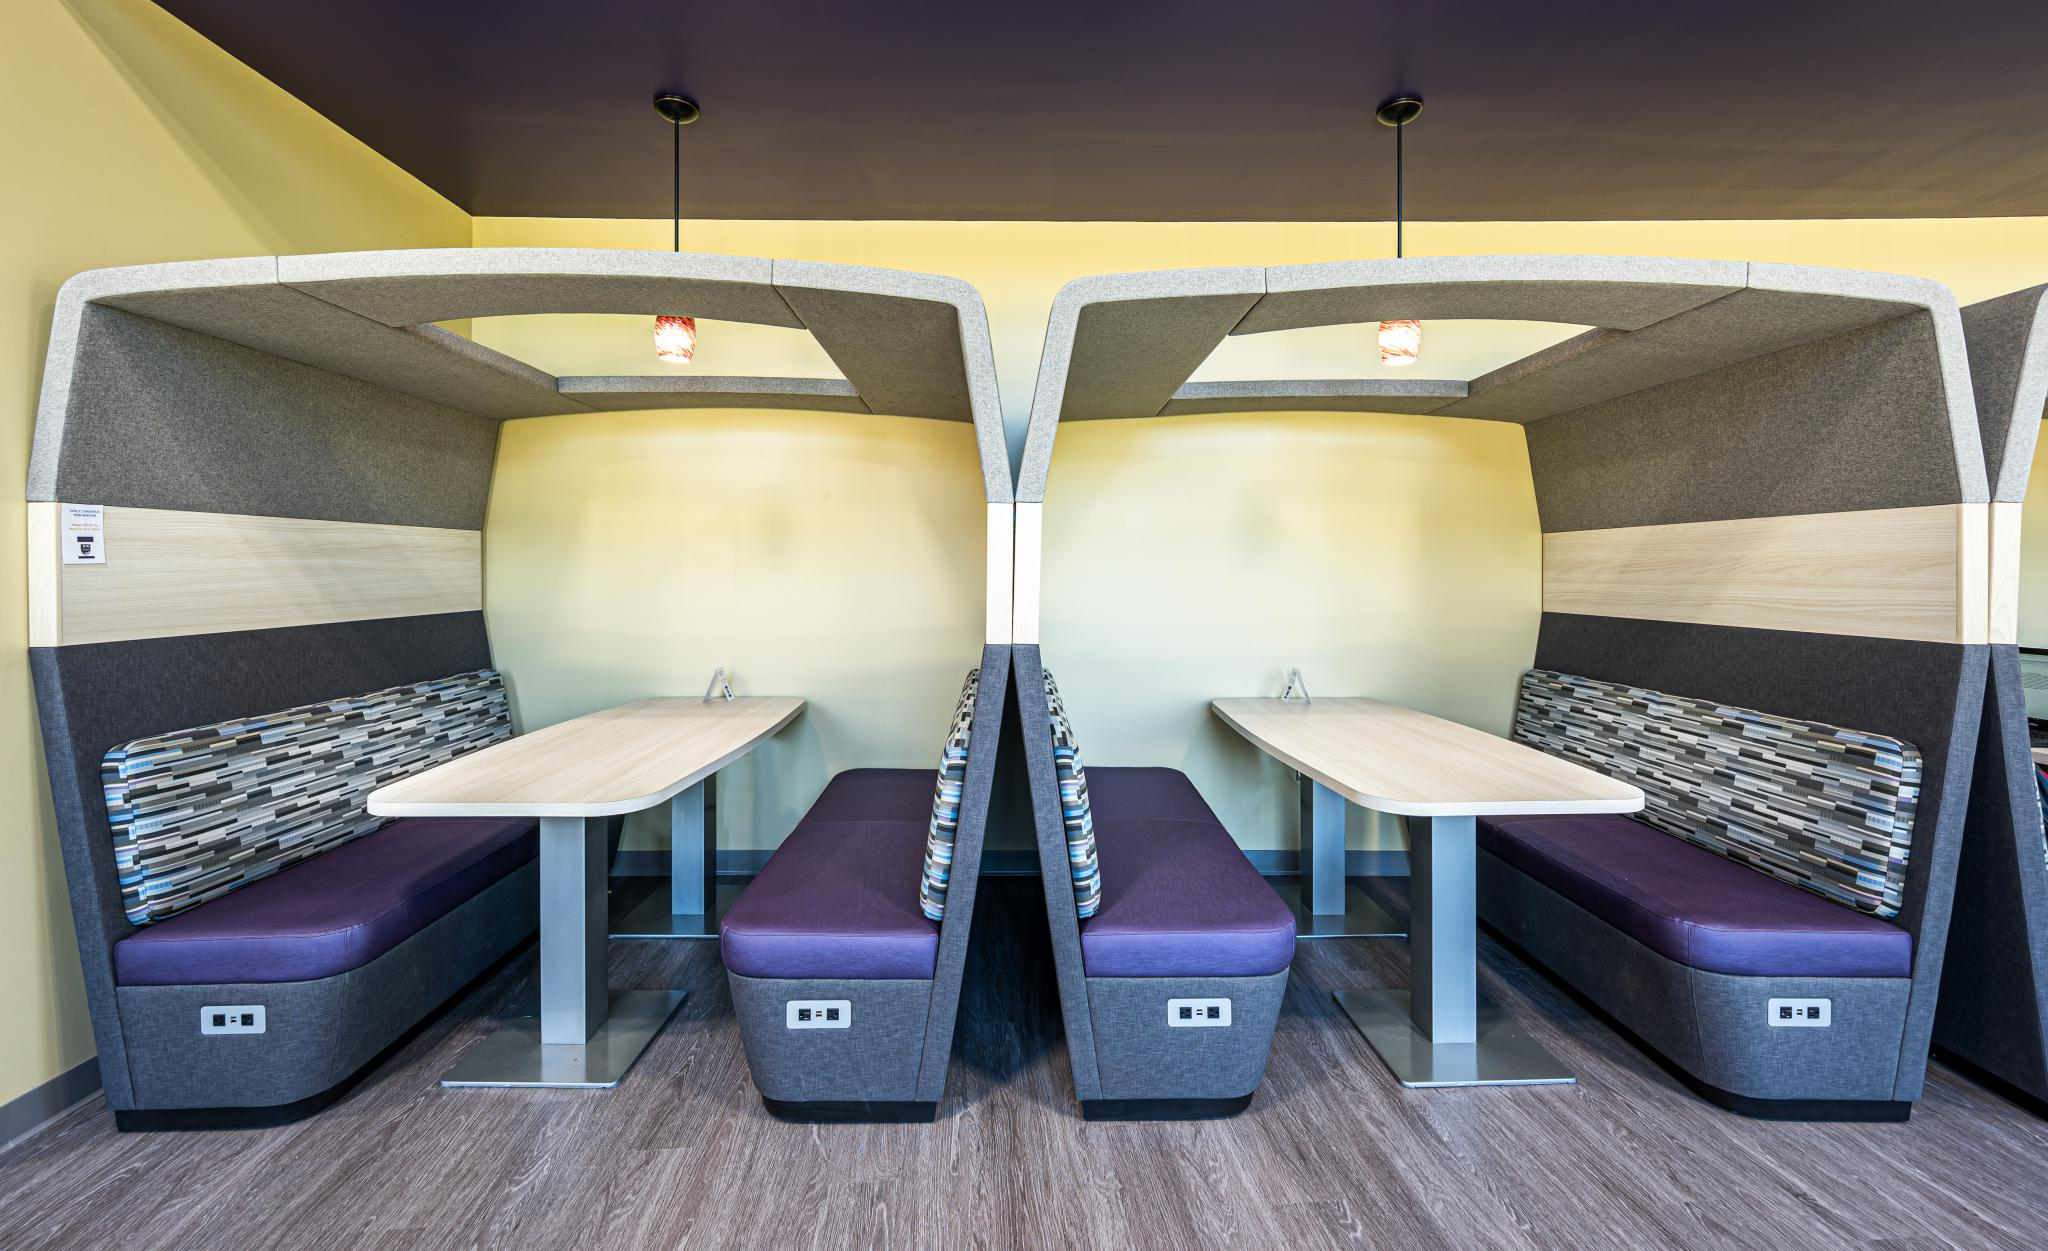 image of study pods next to each other